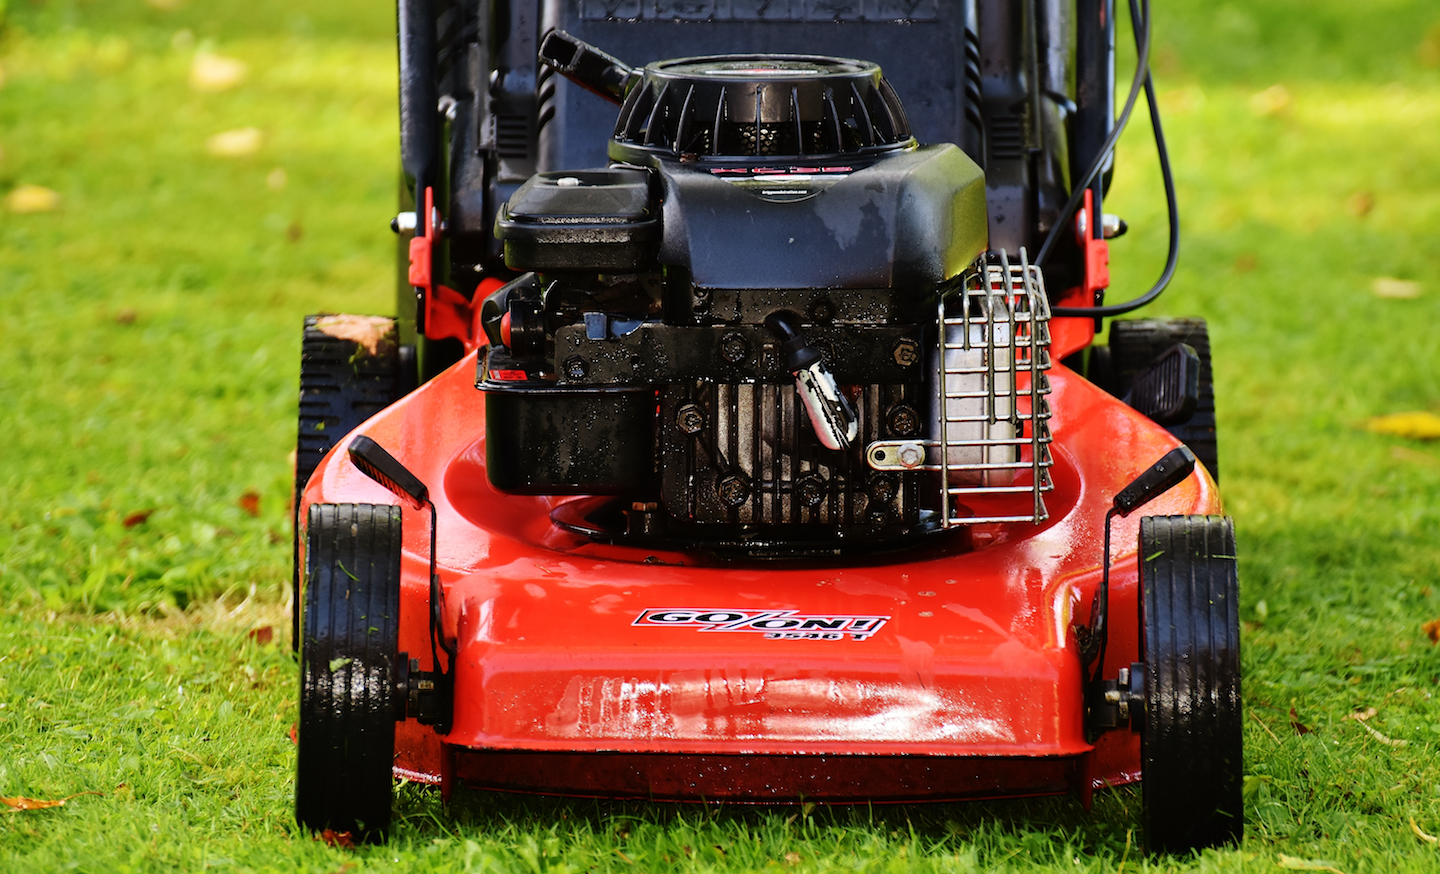 hight resolution of most larger riding mowers now feature a battery for starting as well as a rudimentary alternator and voltage regulator as a charging system to keep the